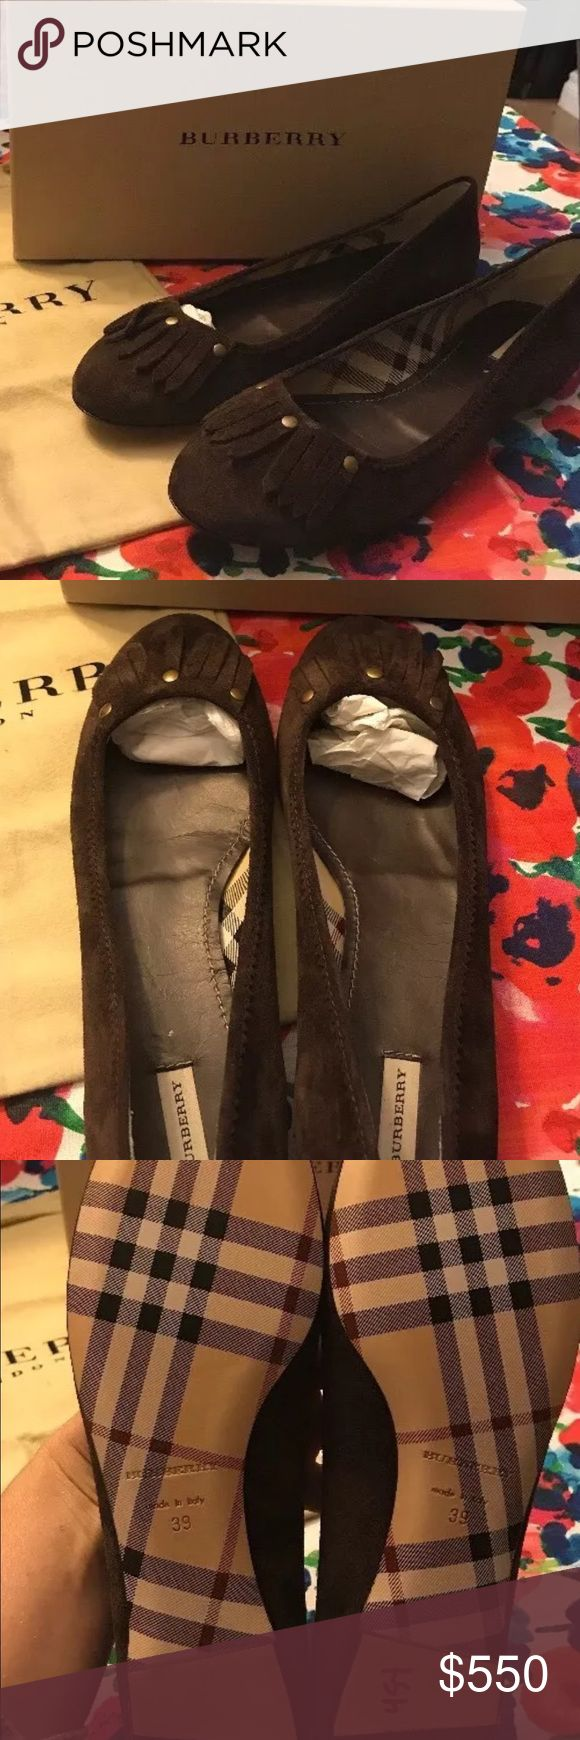 BURBERRY ASH BROWN SUEDE FLATS Women's BURBERRY ASH BROWN SUEDE FLATS SIZE 39. Comes with box and dust bag Burberry Shoes Flats & Loafers